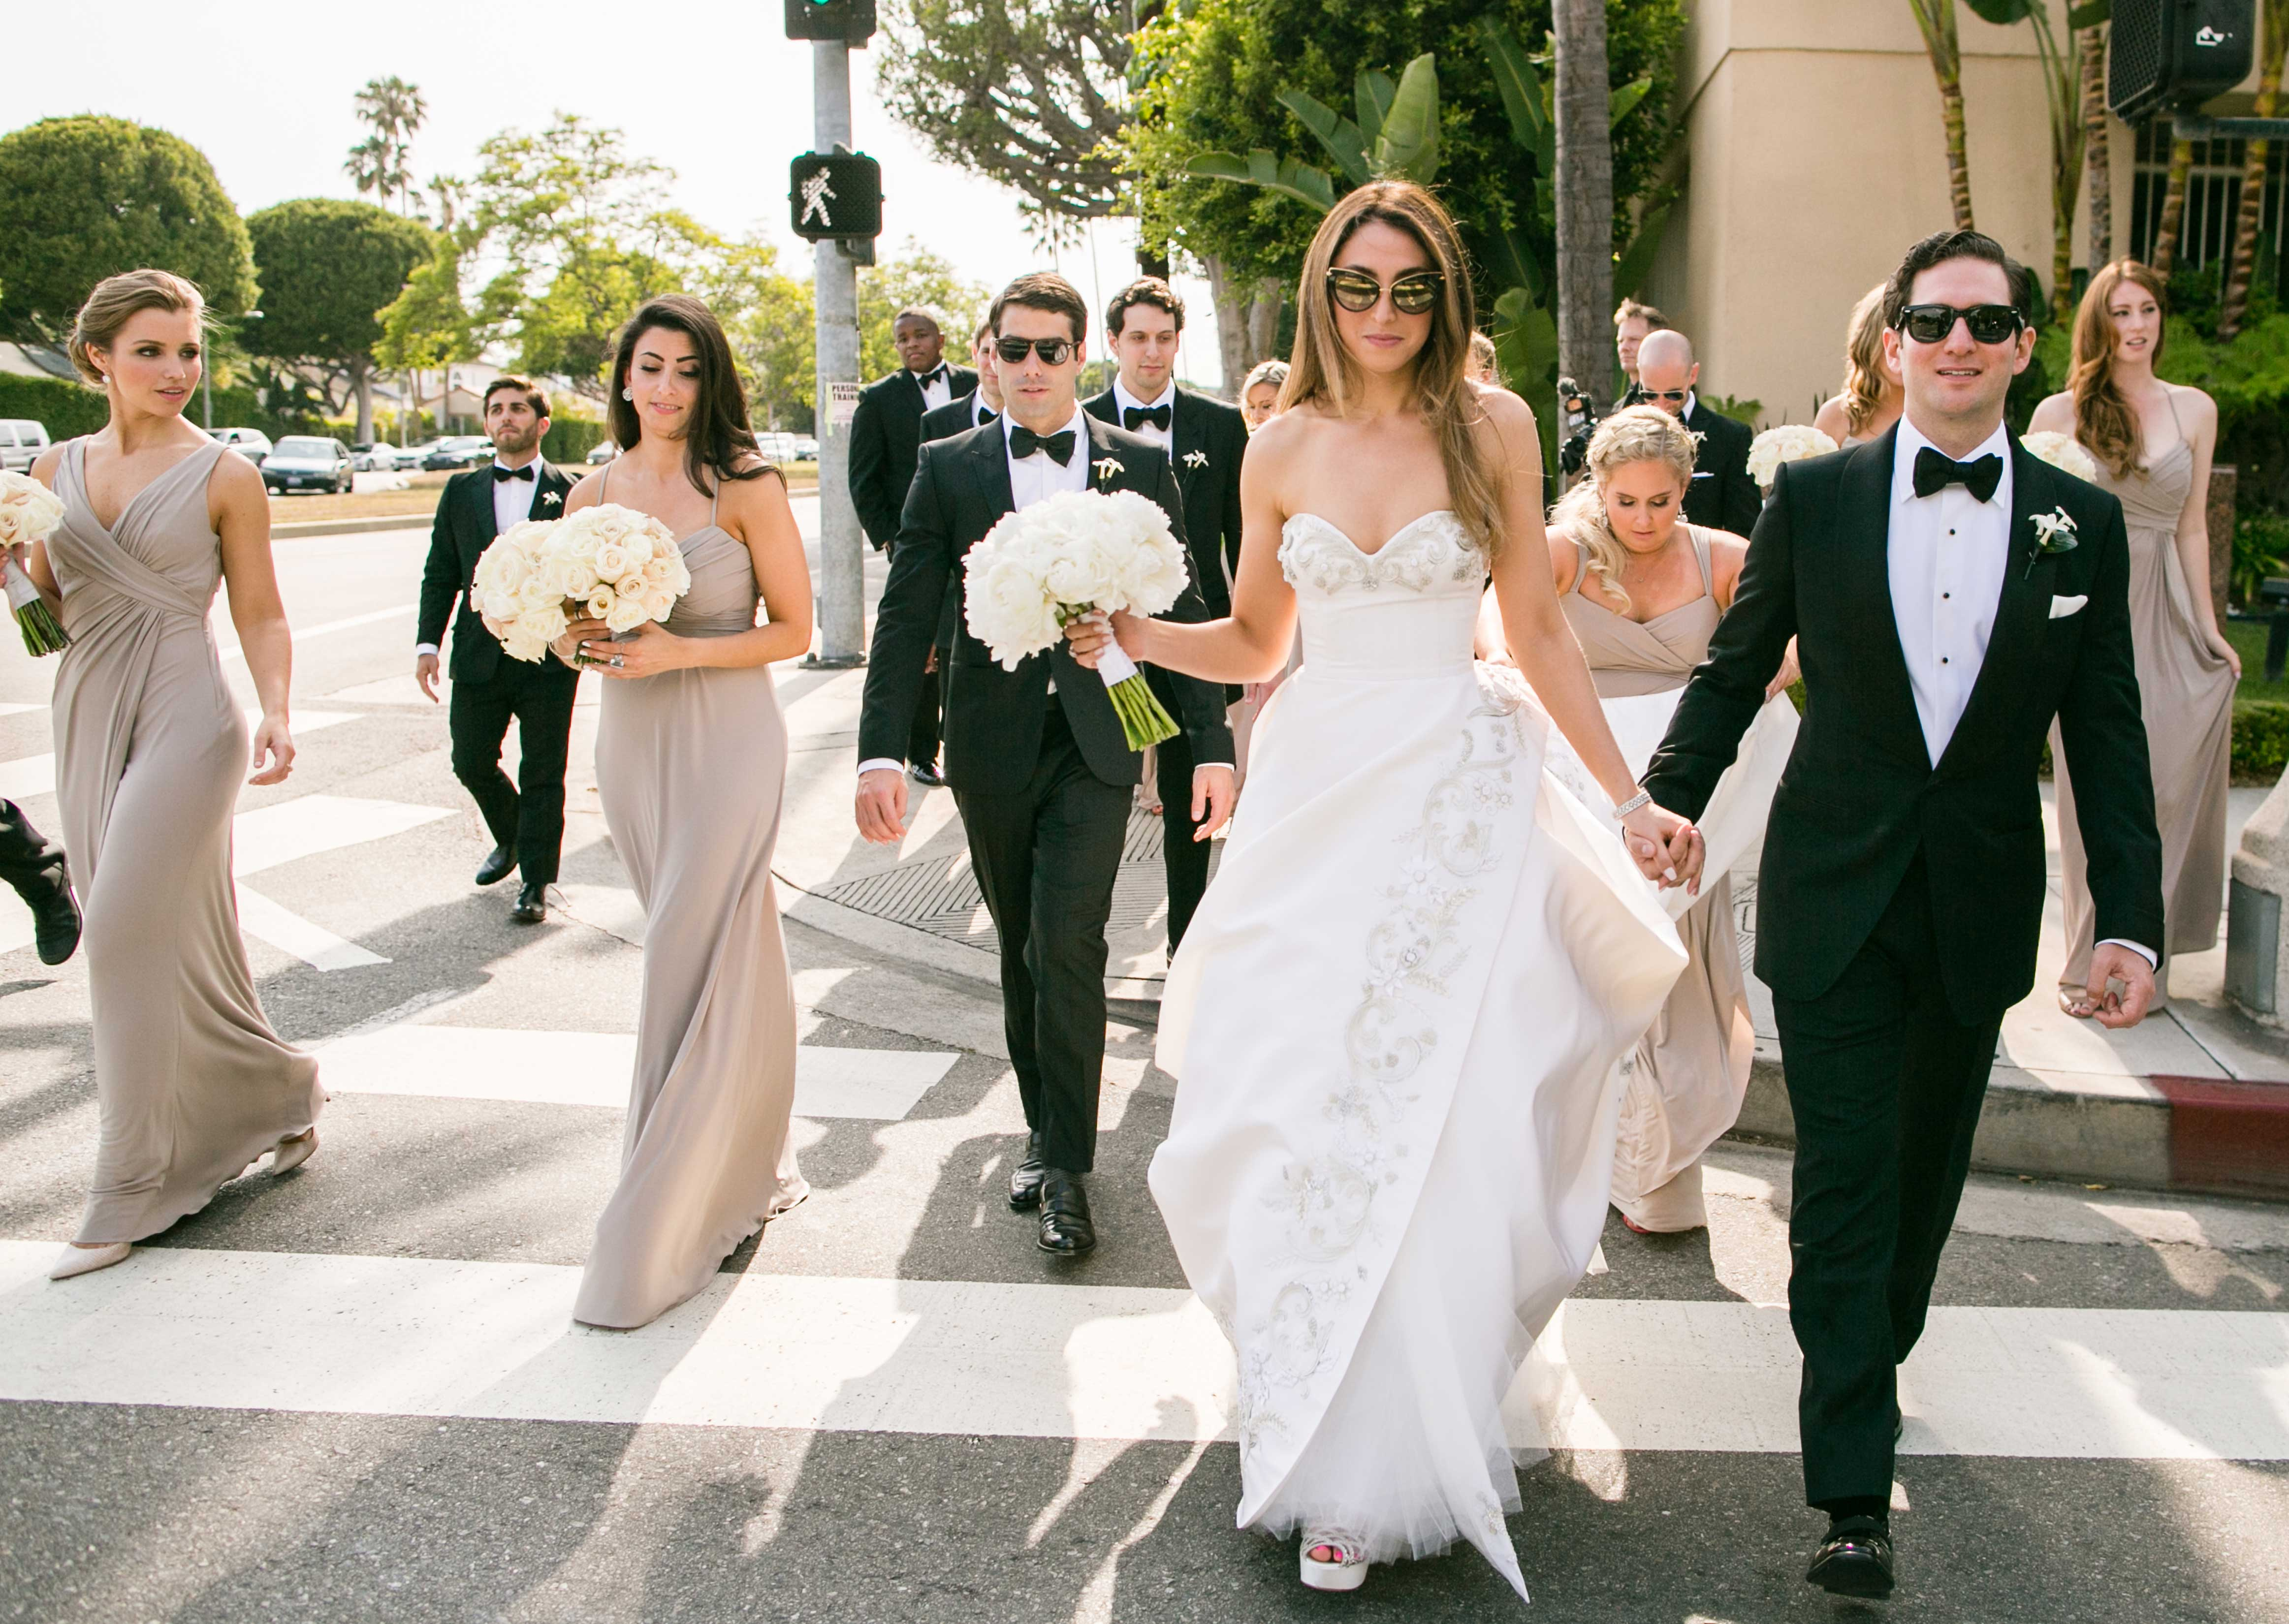 fashionable chic wedding party walking across the street with designer sunglasses